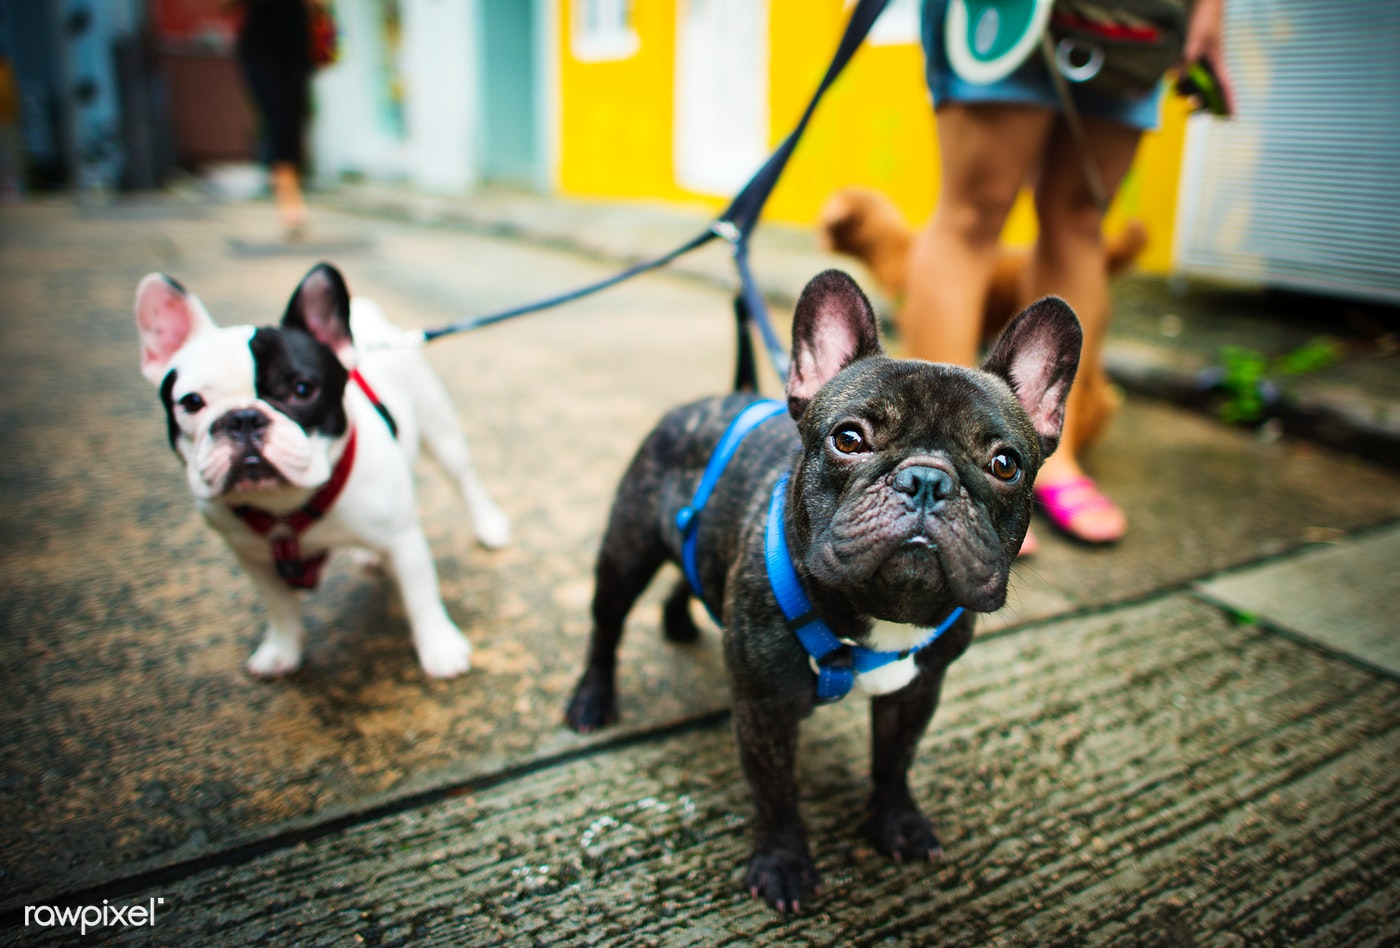 dog, pet, animal, puppy, mammal, frenchie, bulldog, walking, adorable, animals, breed, canine, charming, cute, doggy, french...